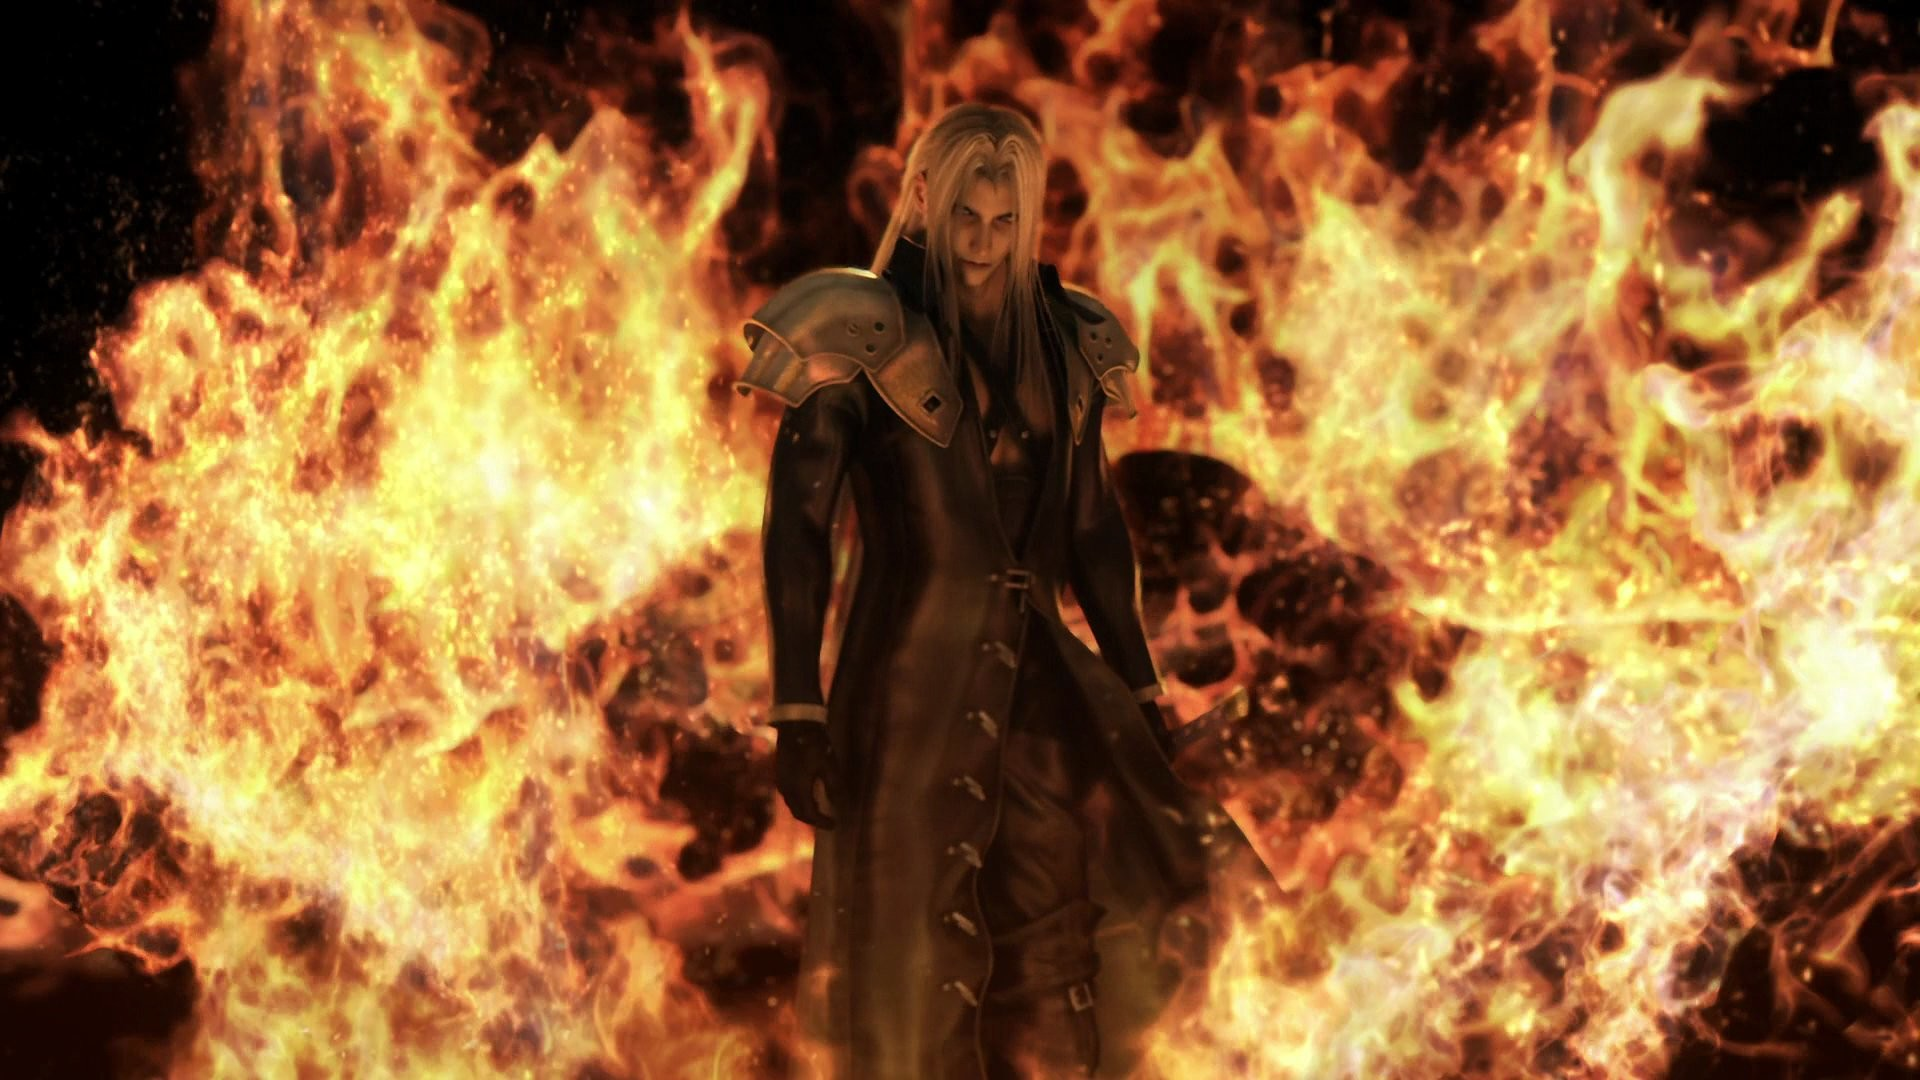 Final Fantasy 7 Sephiroth Wallpaper 66 Pictures